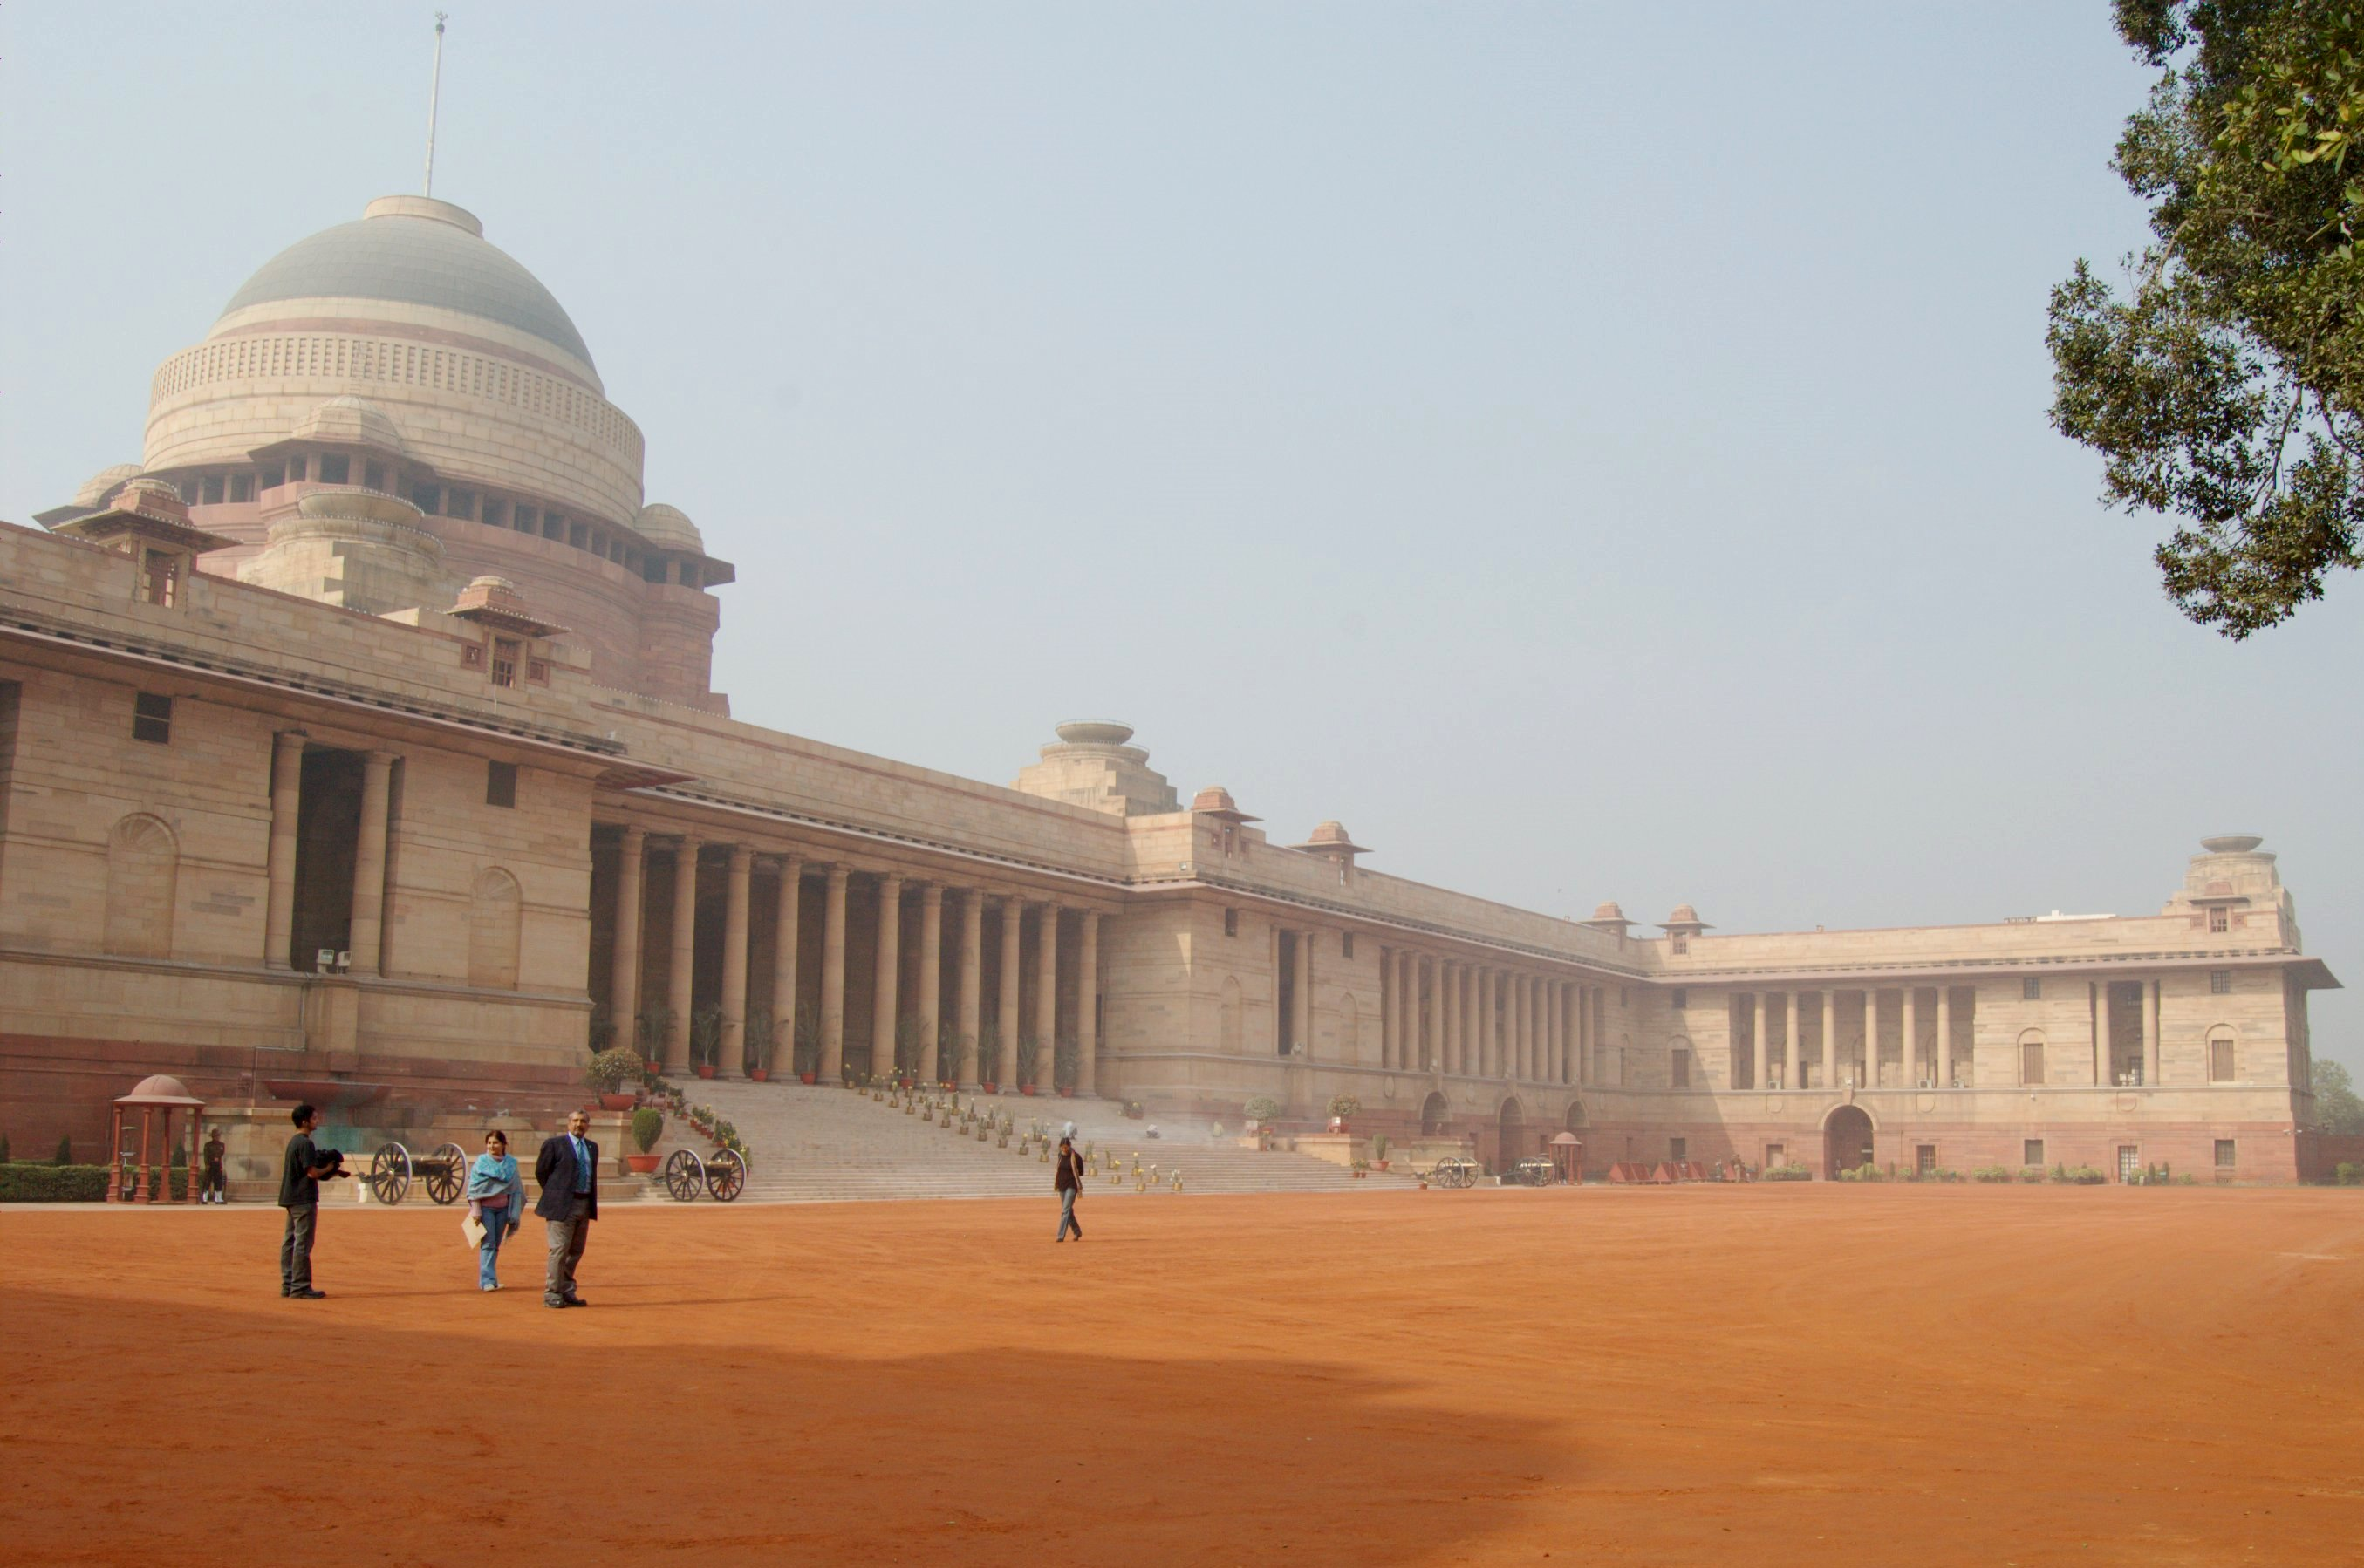 Rashtrapati Bhavan, New Delhi. Photograph by Scott Dexter, courtesy of Wikimedia Commons